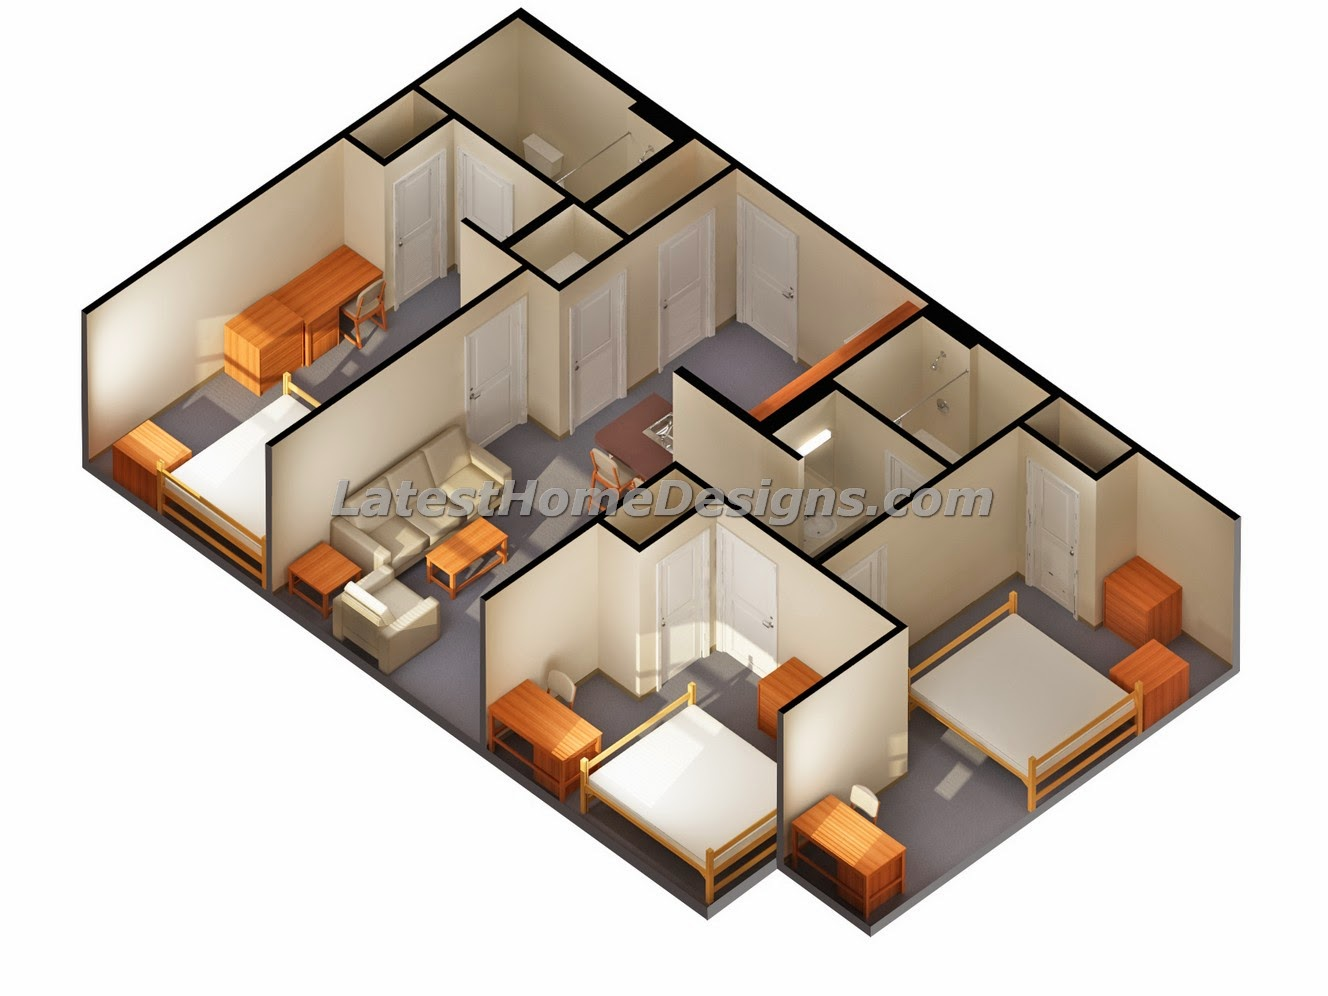 Small 1 story house clipart svg freeuse stock 2 Bedroom Story House Plans One Bed Bath 1 Bathroom Lrg ... svg freeuse stock